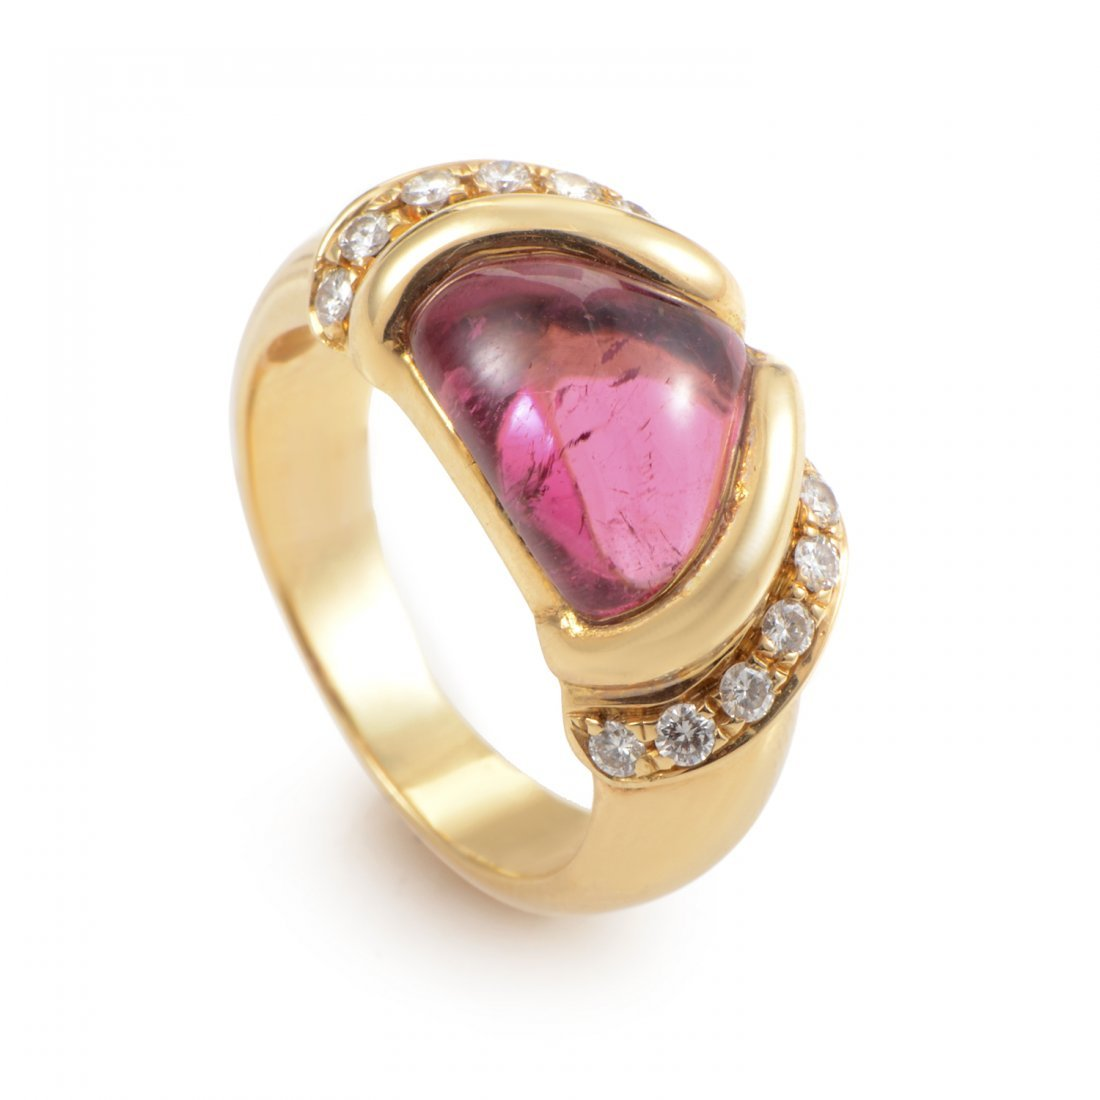 Bvlgari 18K Yellow Gold Pink Tourmaline and Diamond